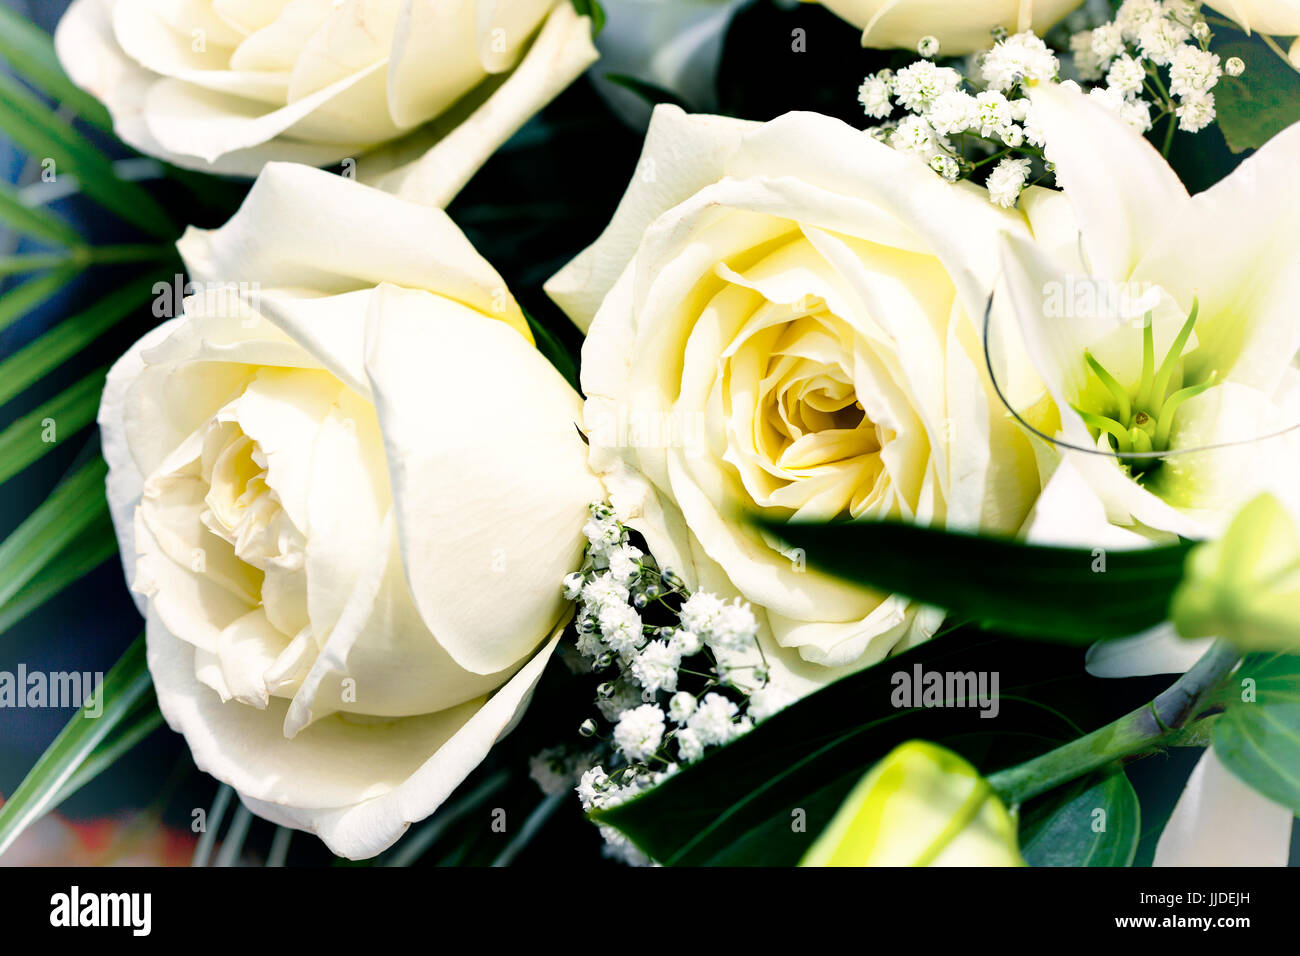 Bouquet with white roses. Close-up. - Stock Image